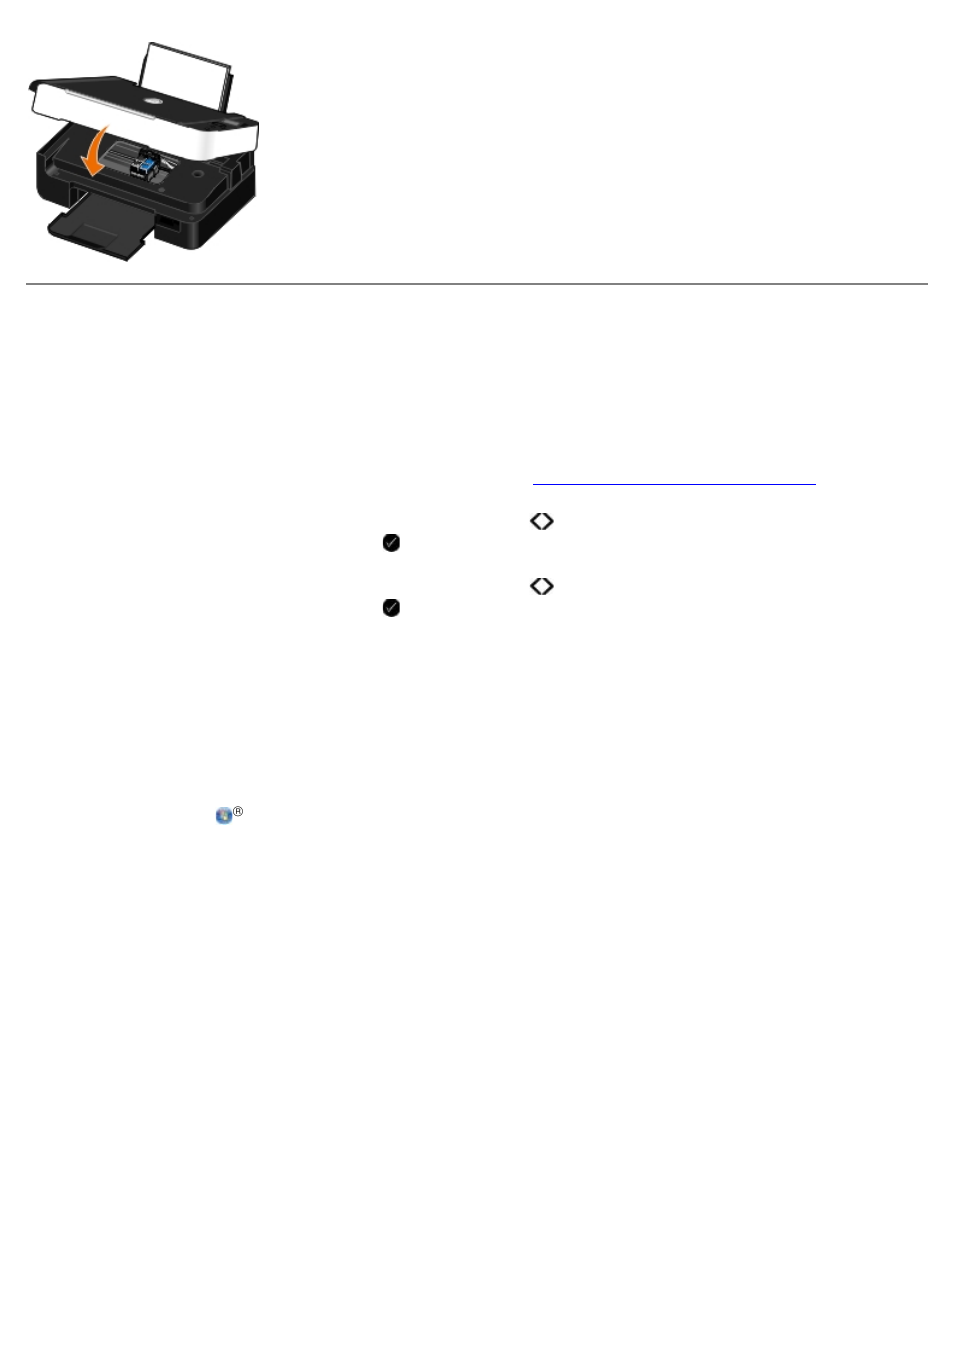 Alineación de los cartuchos de tinta | Dell V305 All In One Inkjet Printer  Manual del